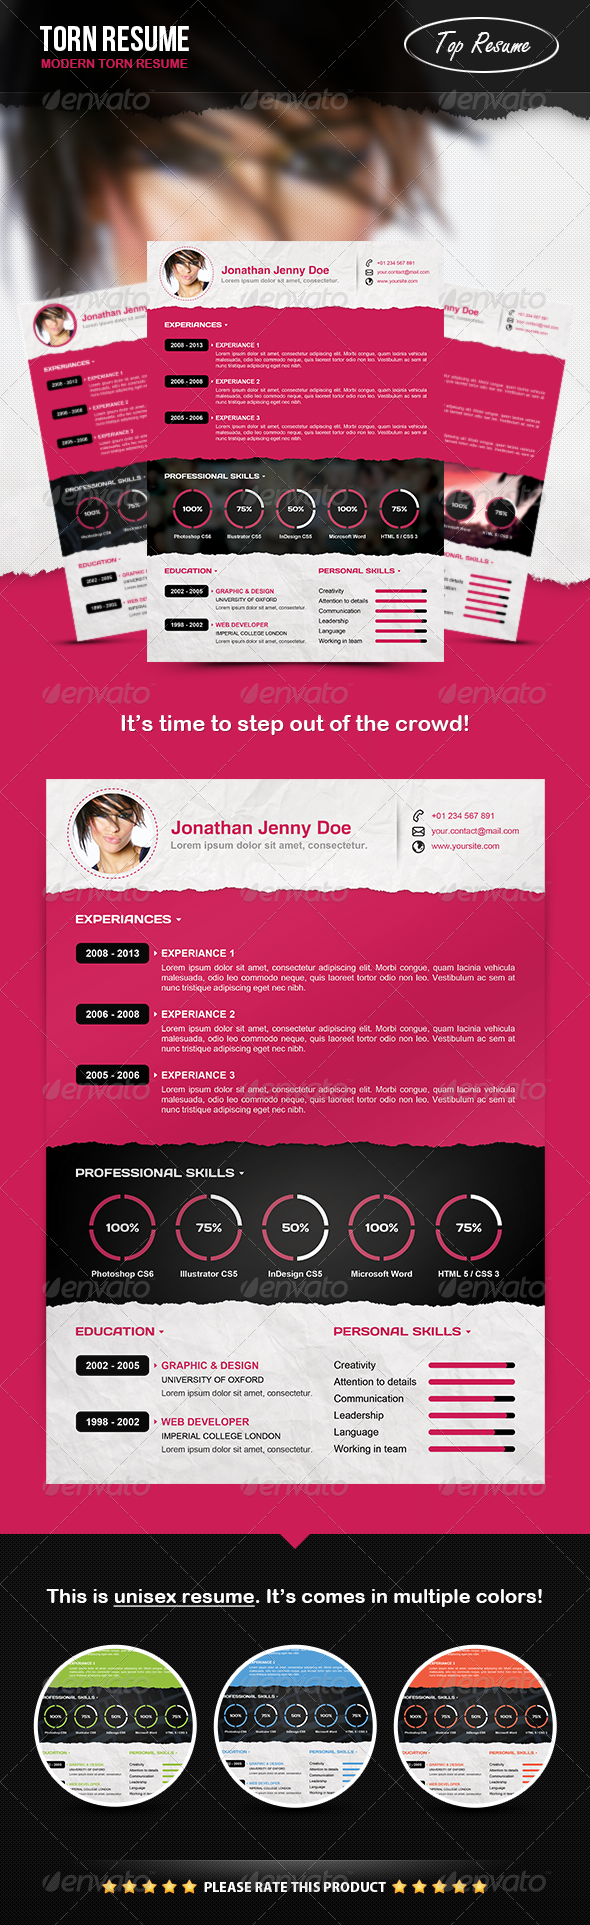 GraphicRiver Torn Resume 4130523